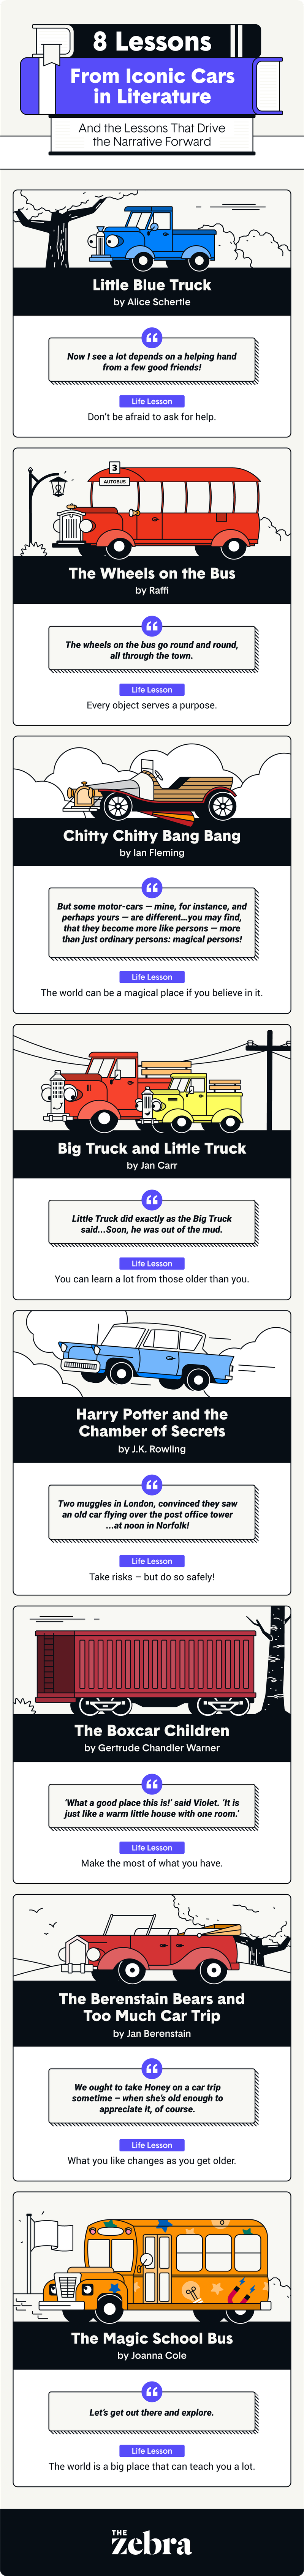 childrens book cars infographic